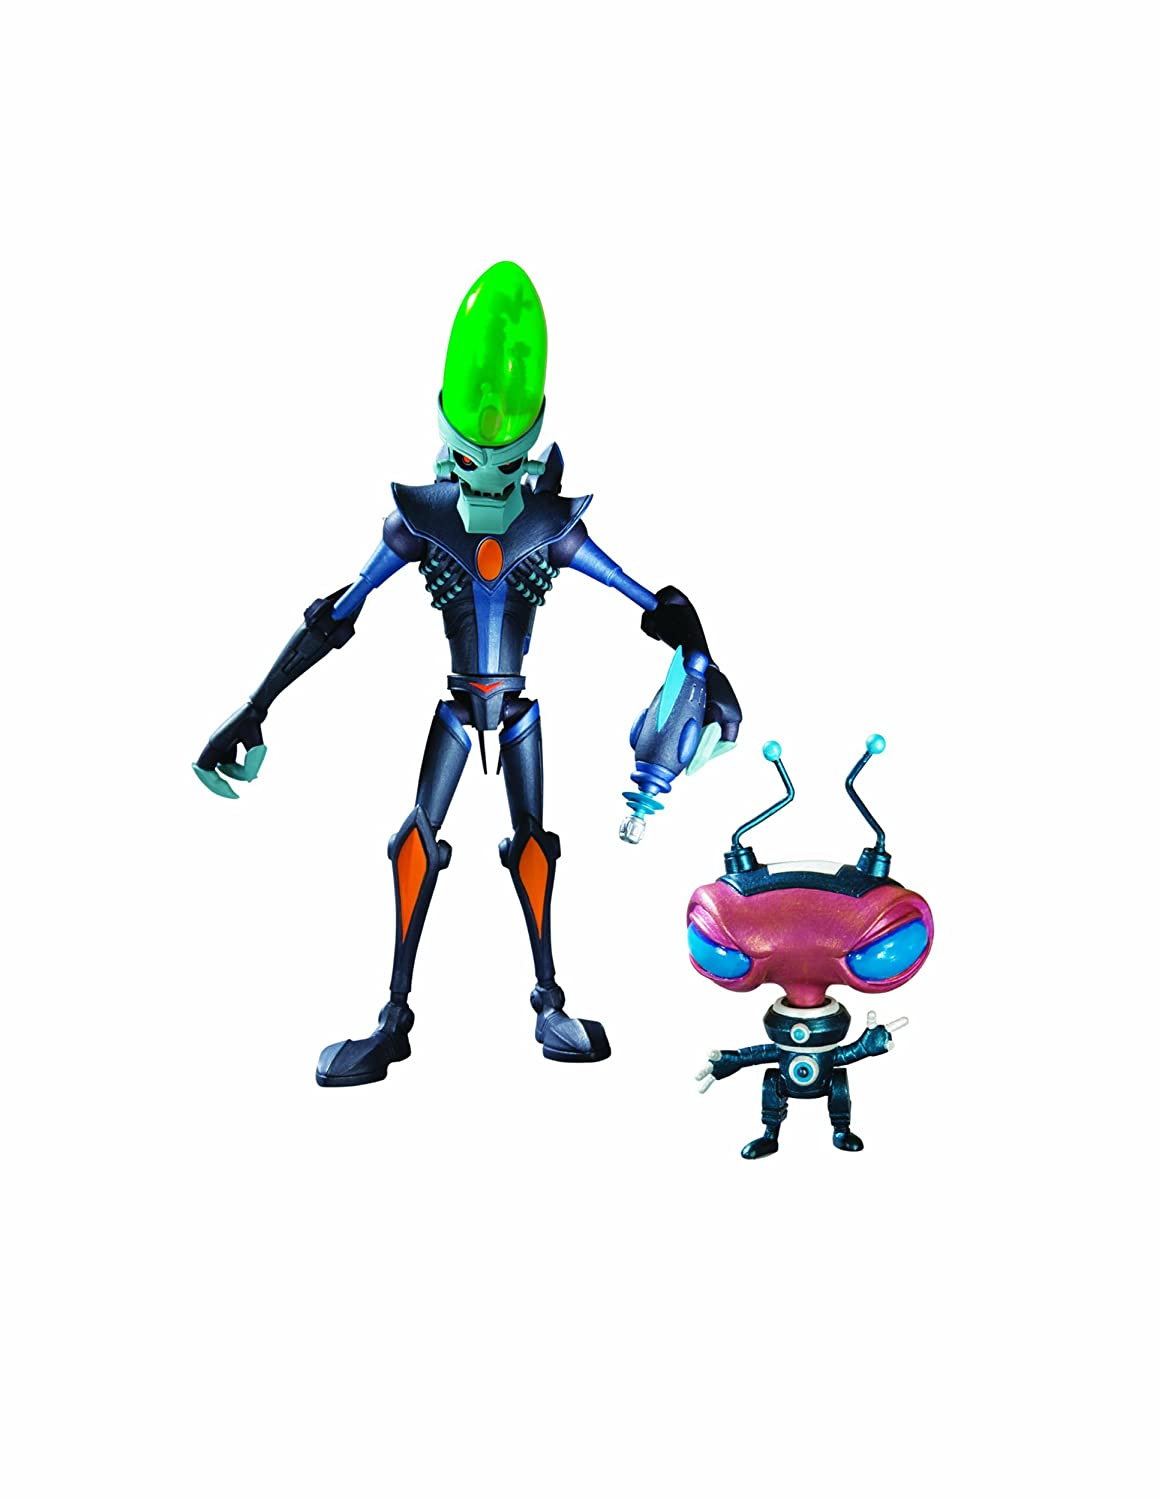 Ratchet and Clank Series 1 - Dr. Nefarious & Zoni